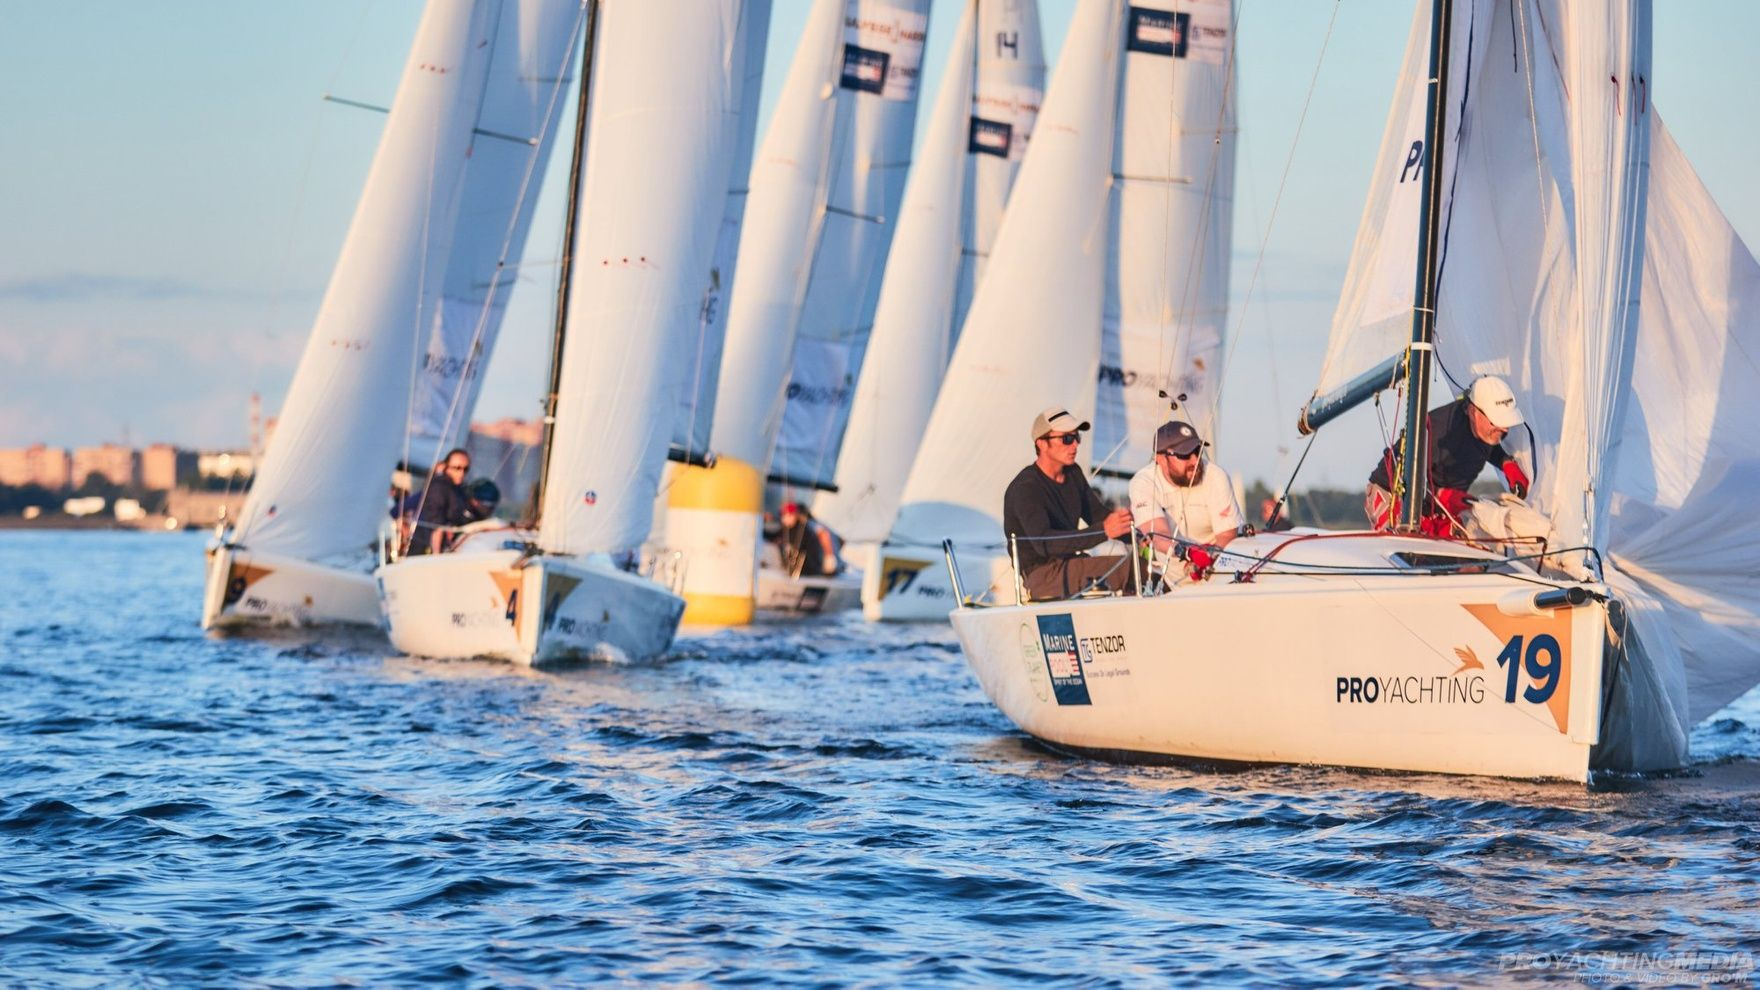 Helmsmen course according to the standards of the Russian Yachting Federation